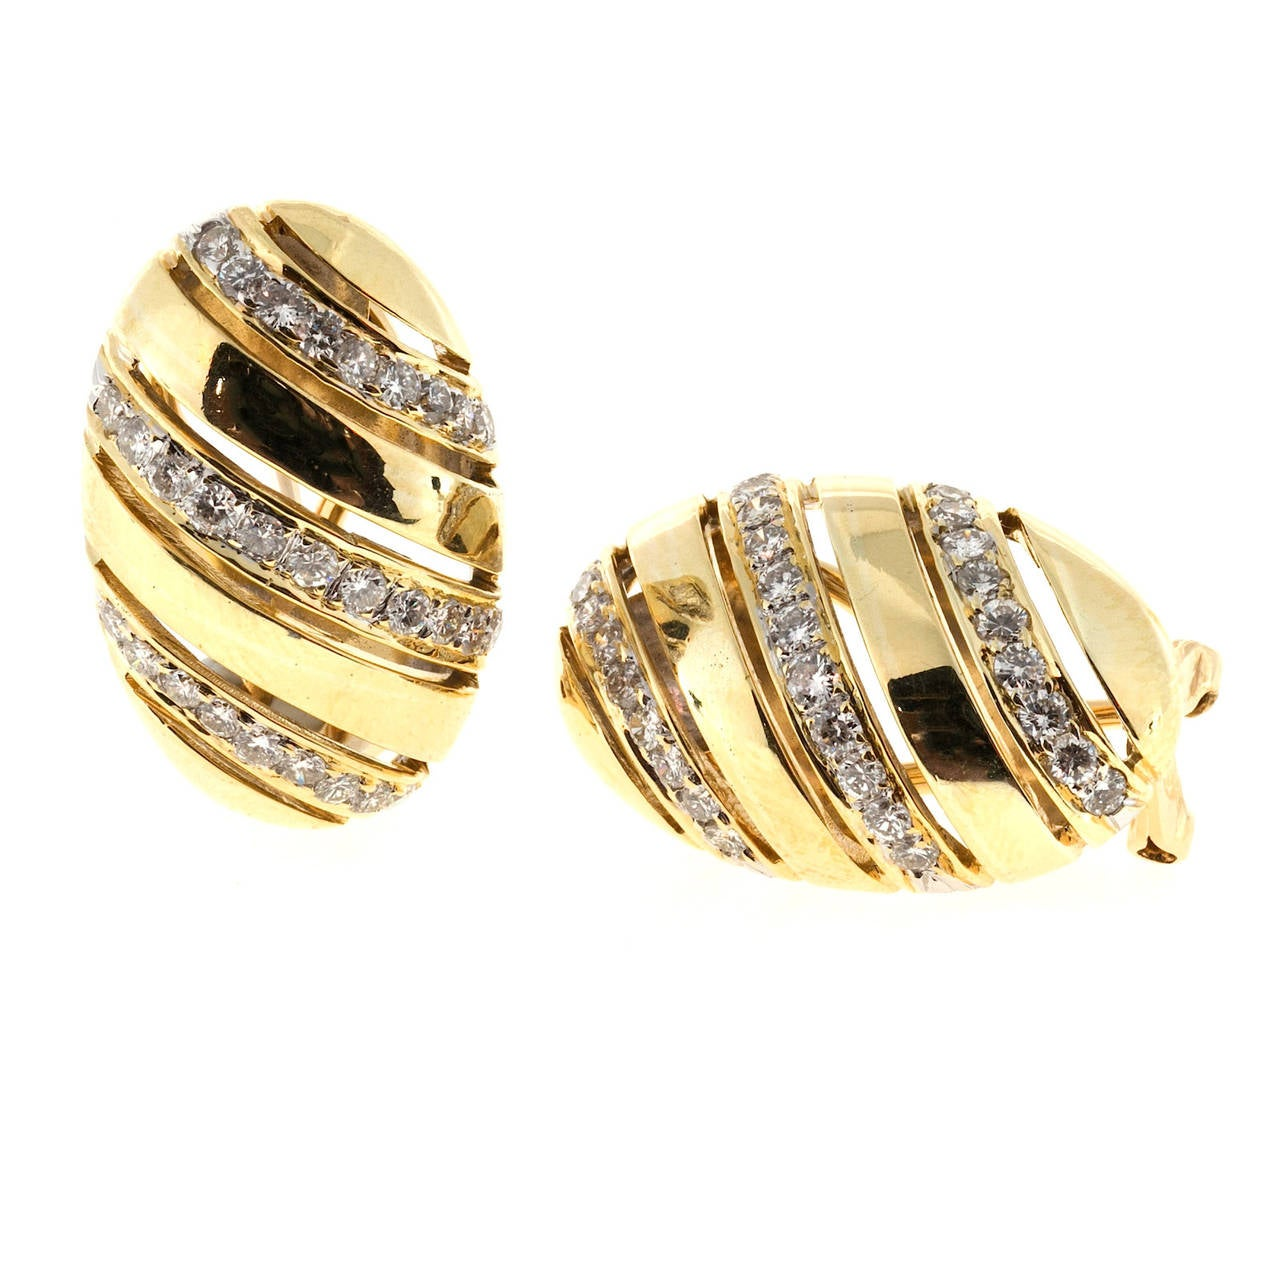 1960's domed oval clip post 18k yellow gold earrings with bright full cut diamonds.  58 round diamonds¸ approx. total weight 1.16cts, G – H, VS2 18k yellow gold 16.1 grams Tested: 18k Stamped: 18k 750 Top to bottom: 23.58mm or .93